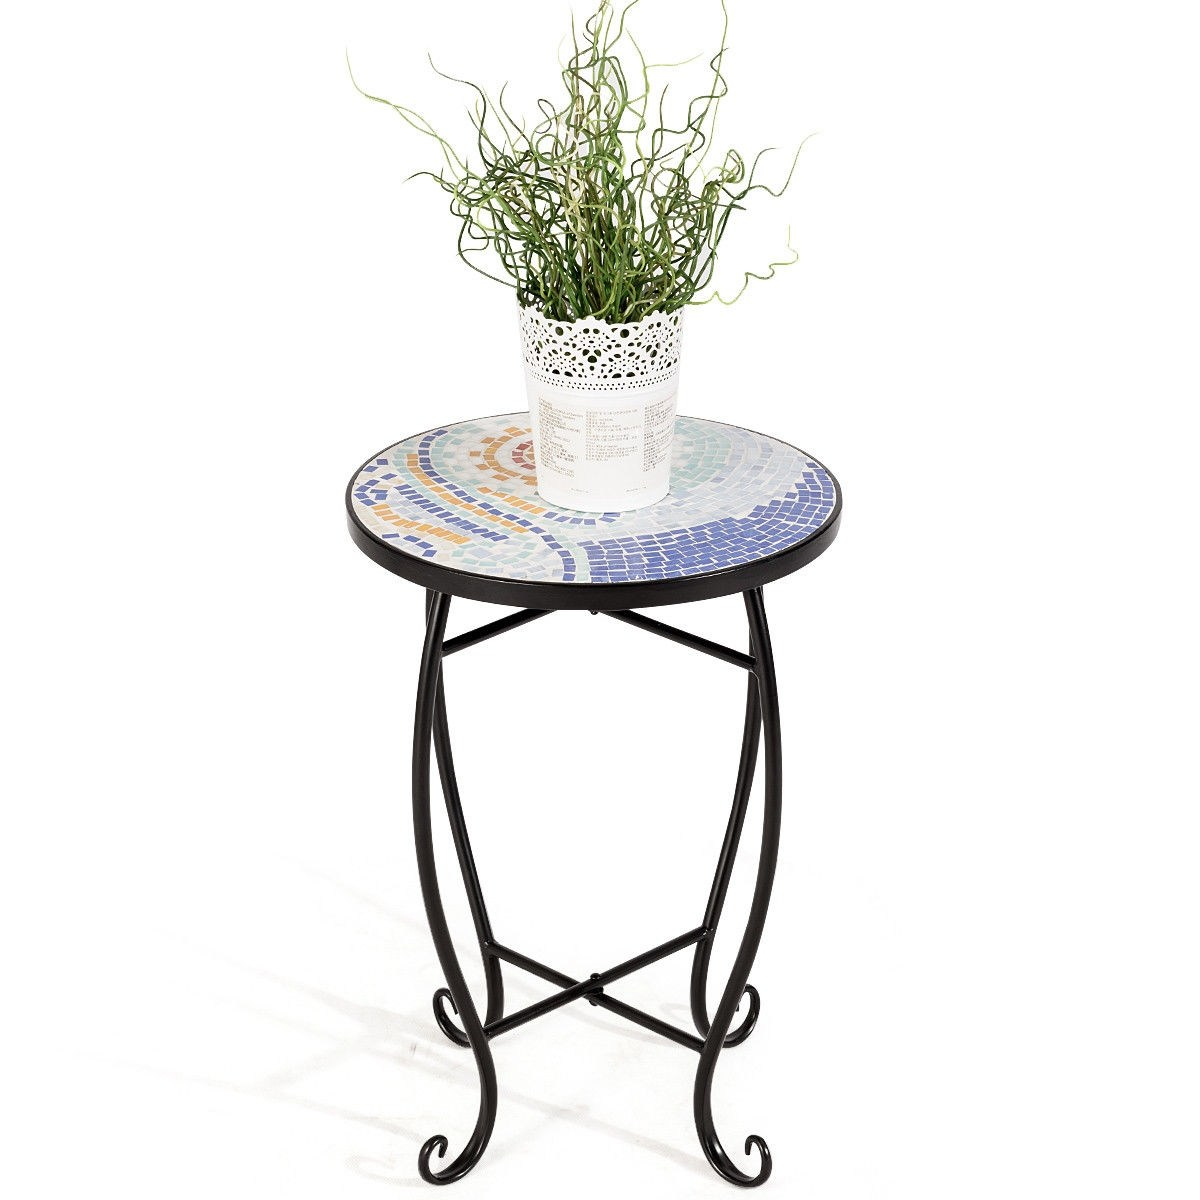 way outdoor indoor accent table plant stand scheme garden steel ocean multicolor free shipping orders over red metal side unique coffee tables toronto patio clearance corner chair